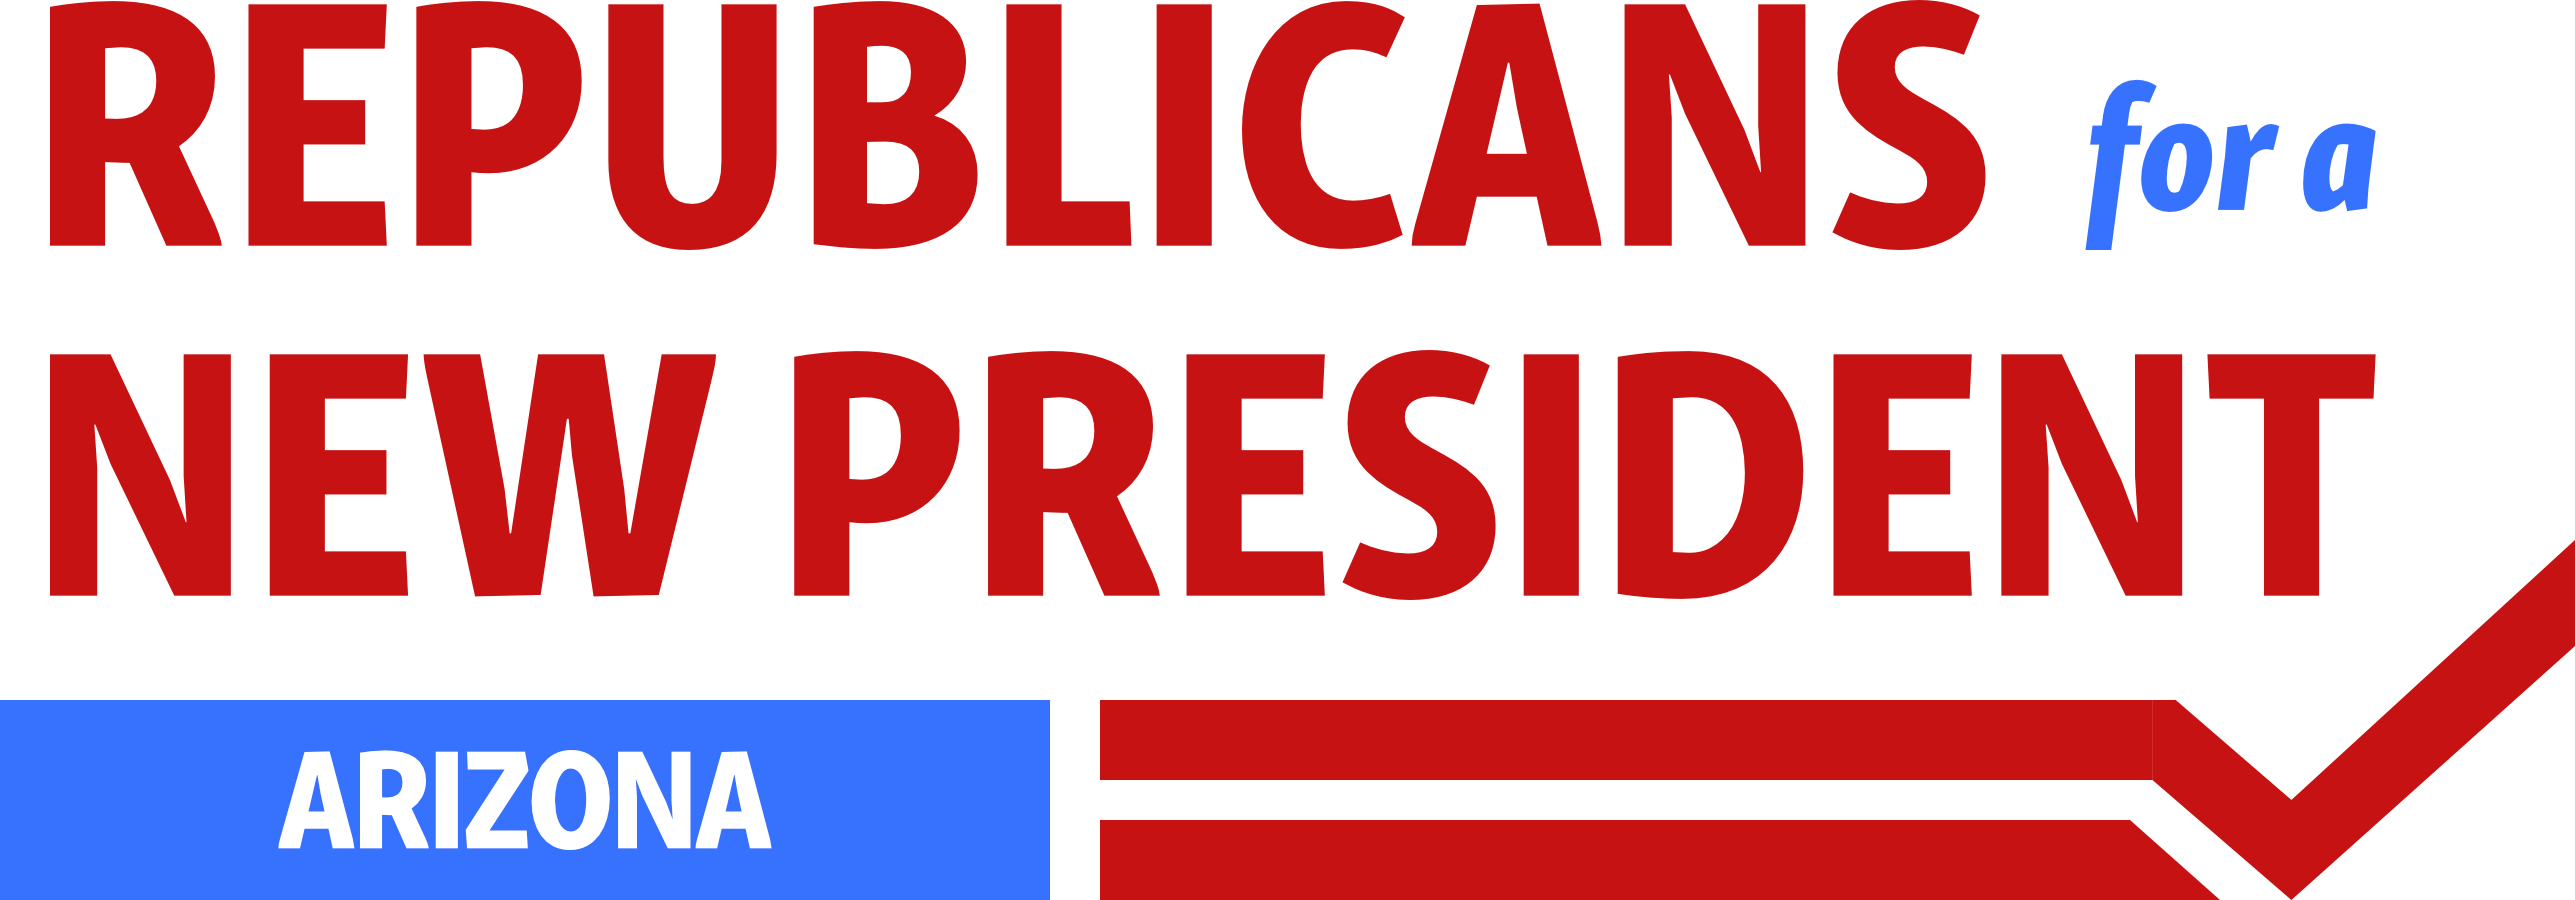 Republicans for a New President - AZ